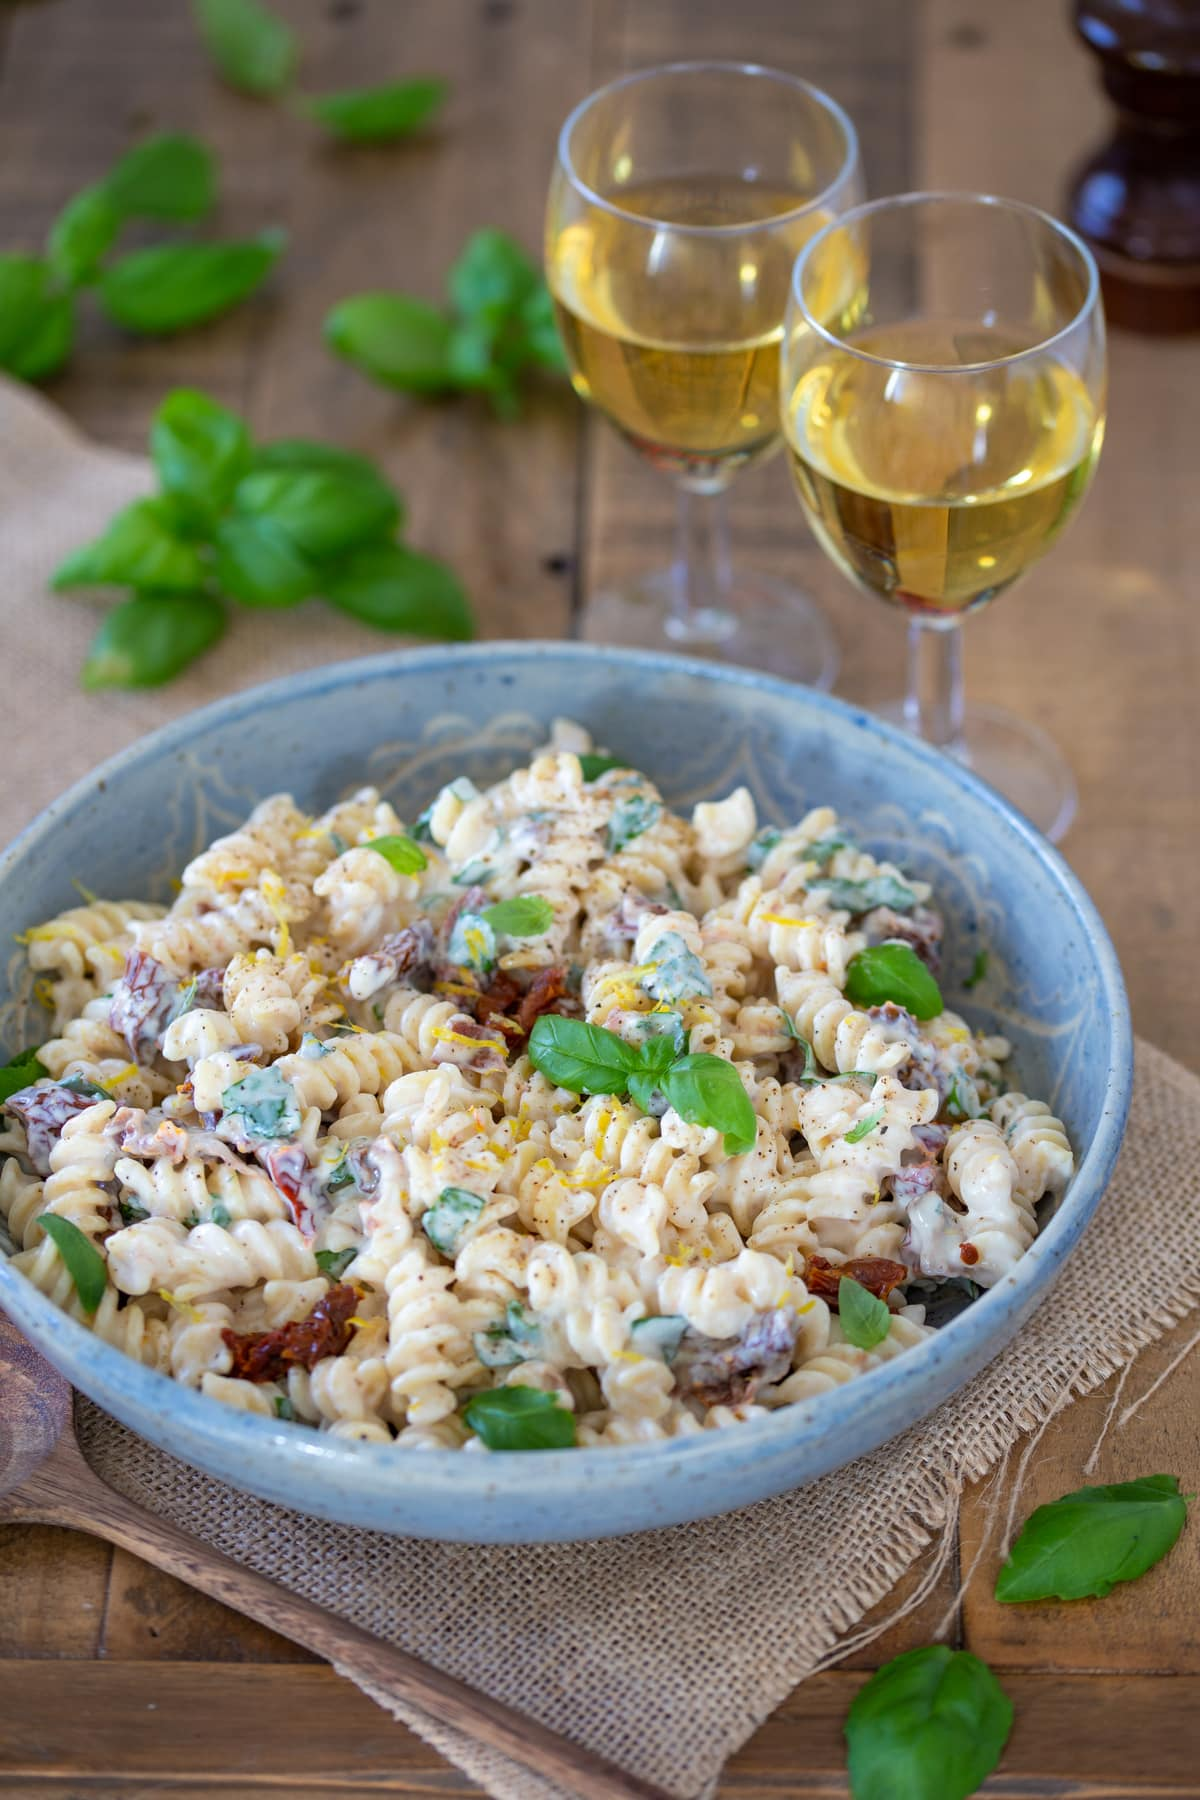 This pasta salad in a bowl, with 2 glasses of wine aside.